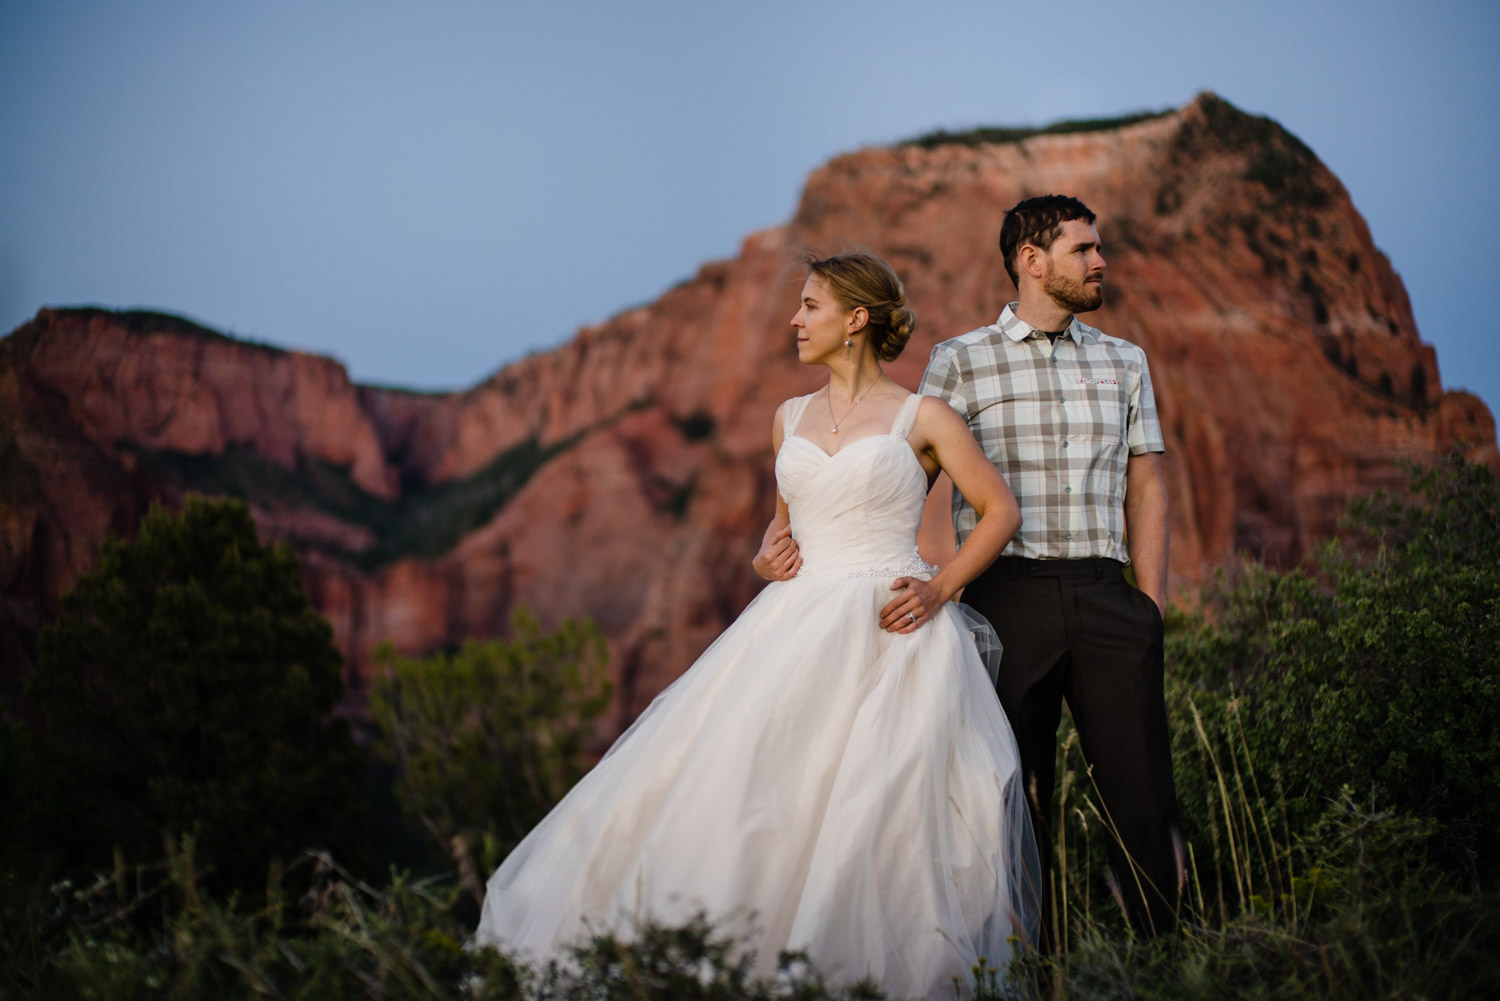 Kolob Canyons Wedding in Zion National Park newlyweds together photo